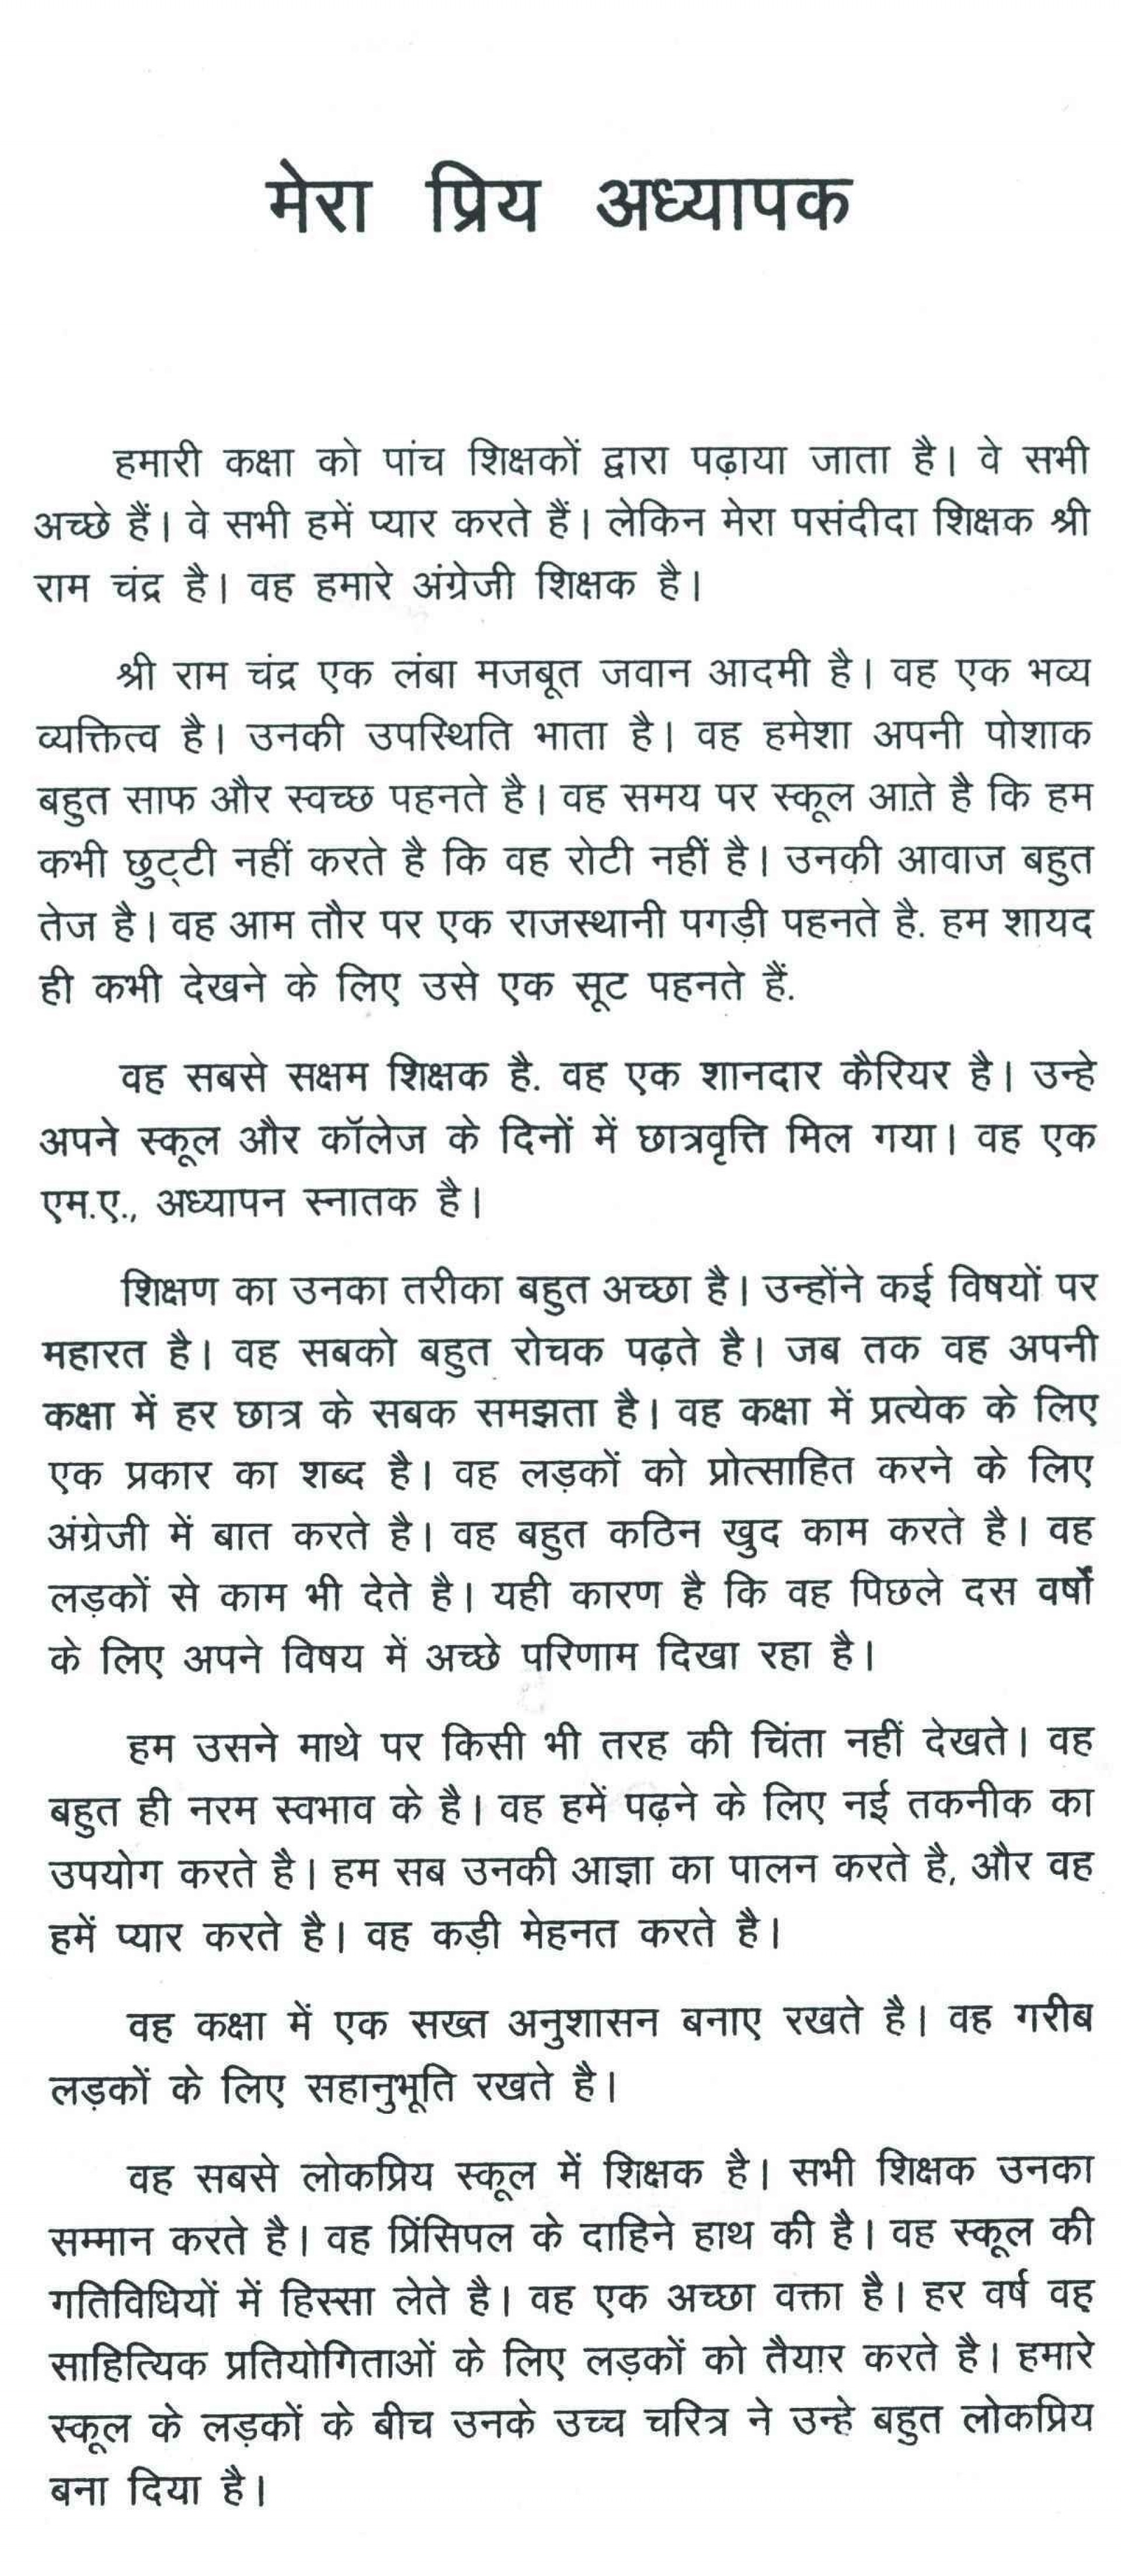 003 Essay Example 10005 Thumb Inspirational Breathtaking Essays In Hindi About Life And Struggles Fathers 1920